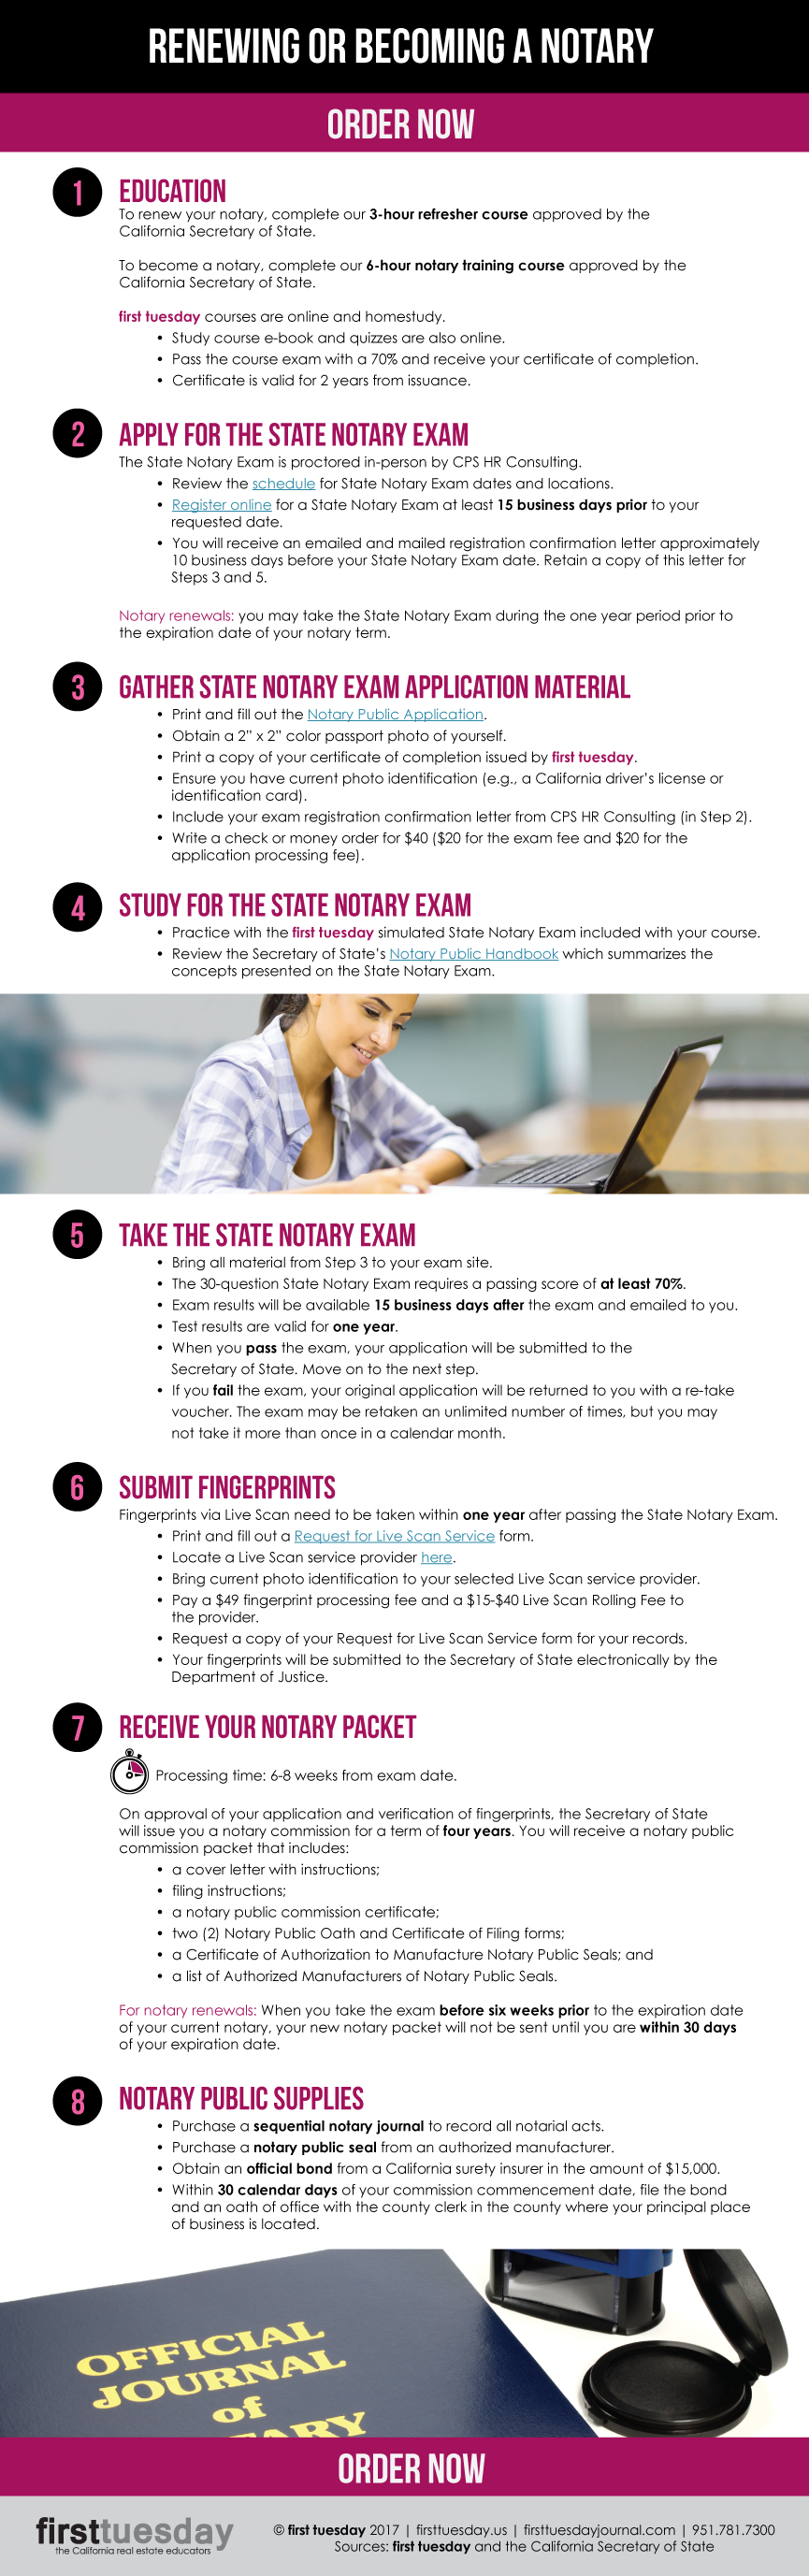 Notary infographic